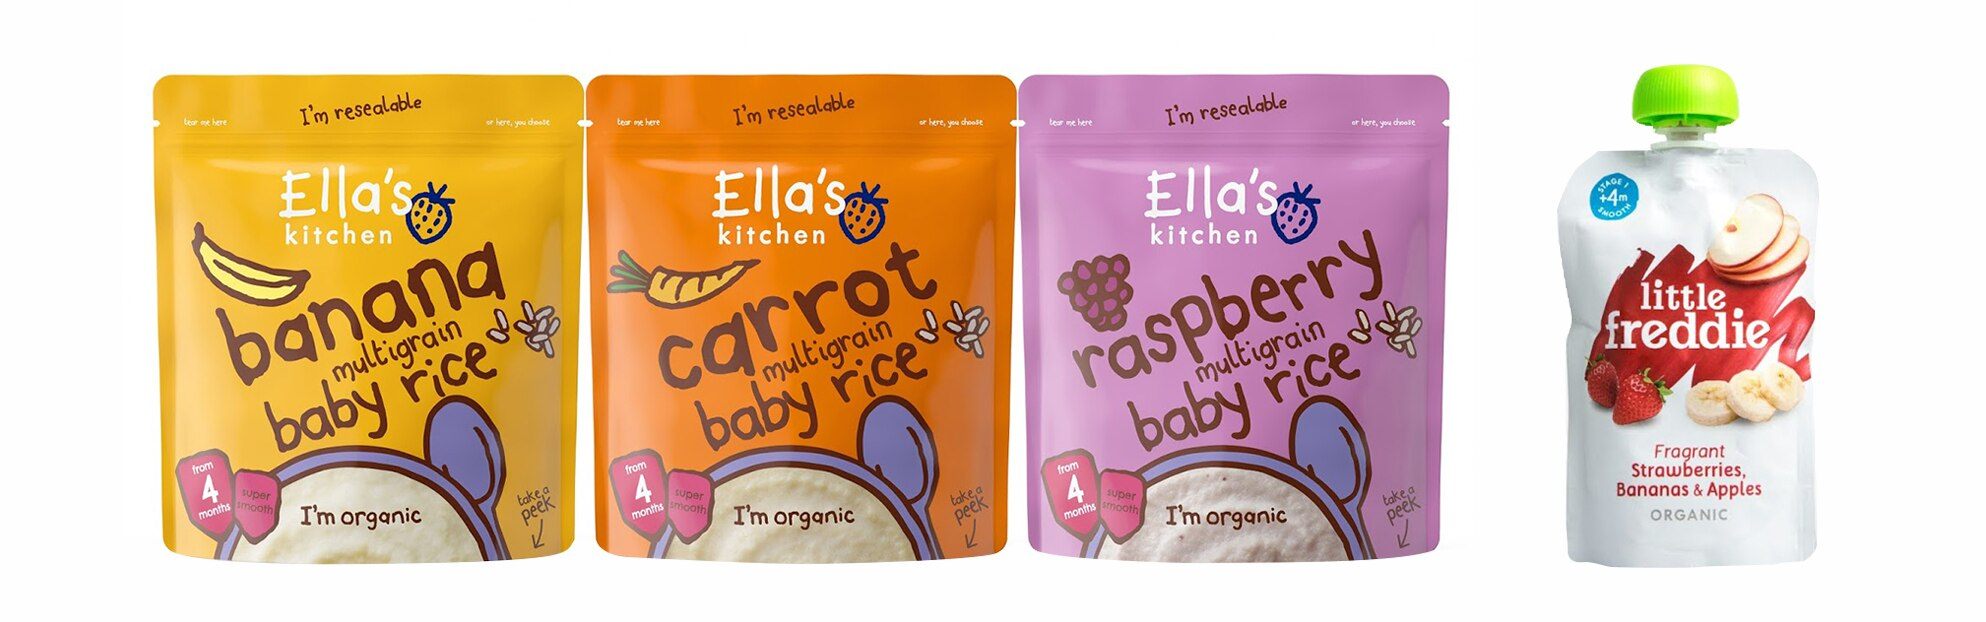 organic-baby-rice-packaging-pouch.jpg